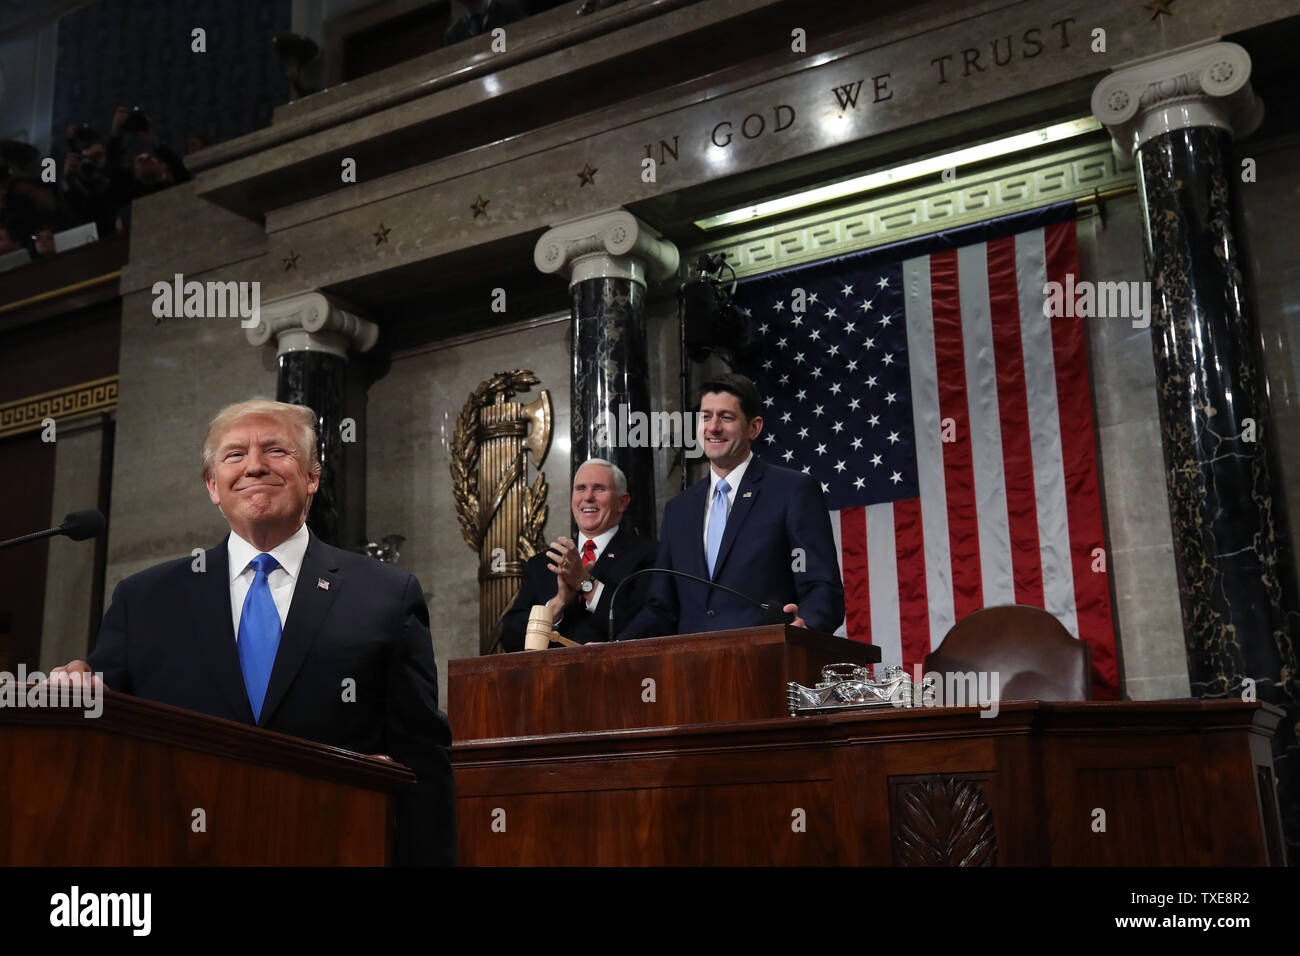 WASHINGTON, DC - JANUARY 30:  U.S. President Donald J. Trump (L) stands at the podium as U.S. Vice President Mike Pence (C) and Speaker of the House U.S. Rep. Paul Ryan (R-WI) (R) look on during the State of the Union address in the chamber of the U.S. House of Representatives January 30, 2018 in Washington, DC. This is the first State of the Union address given by U.S. President Donald Trump and his second joint-session address to Congress.  (Photo by Win McNamee/Getty Images) - Stock Image